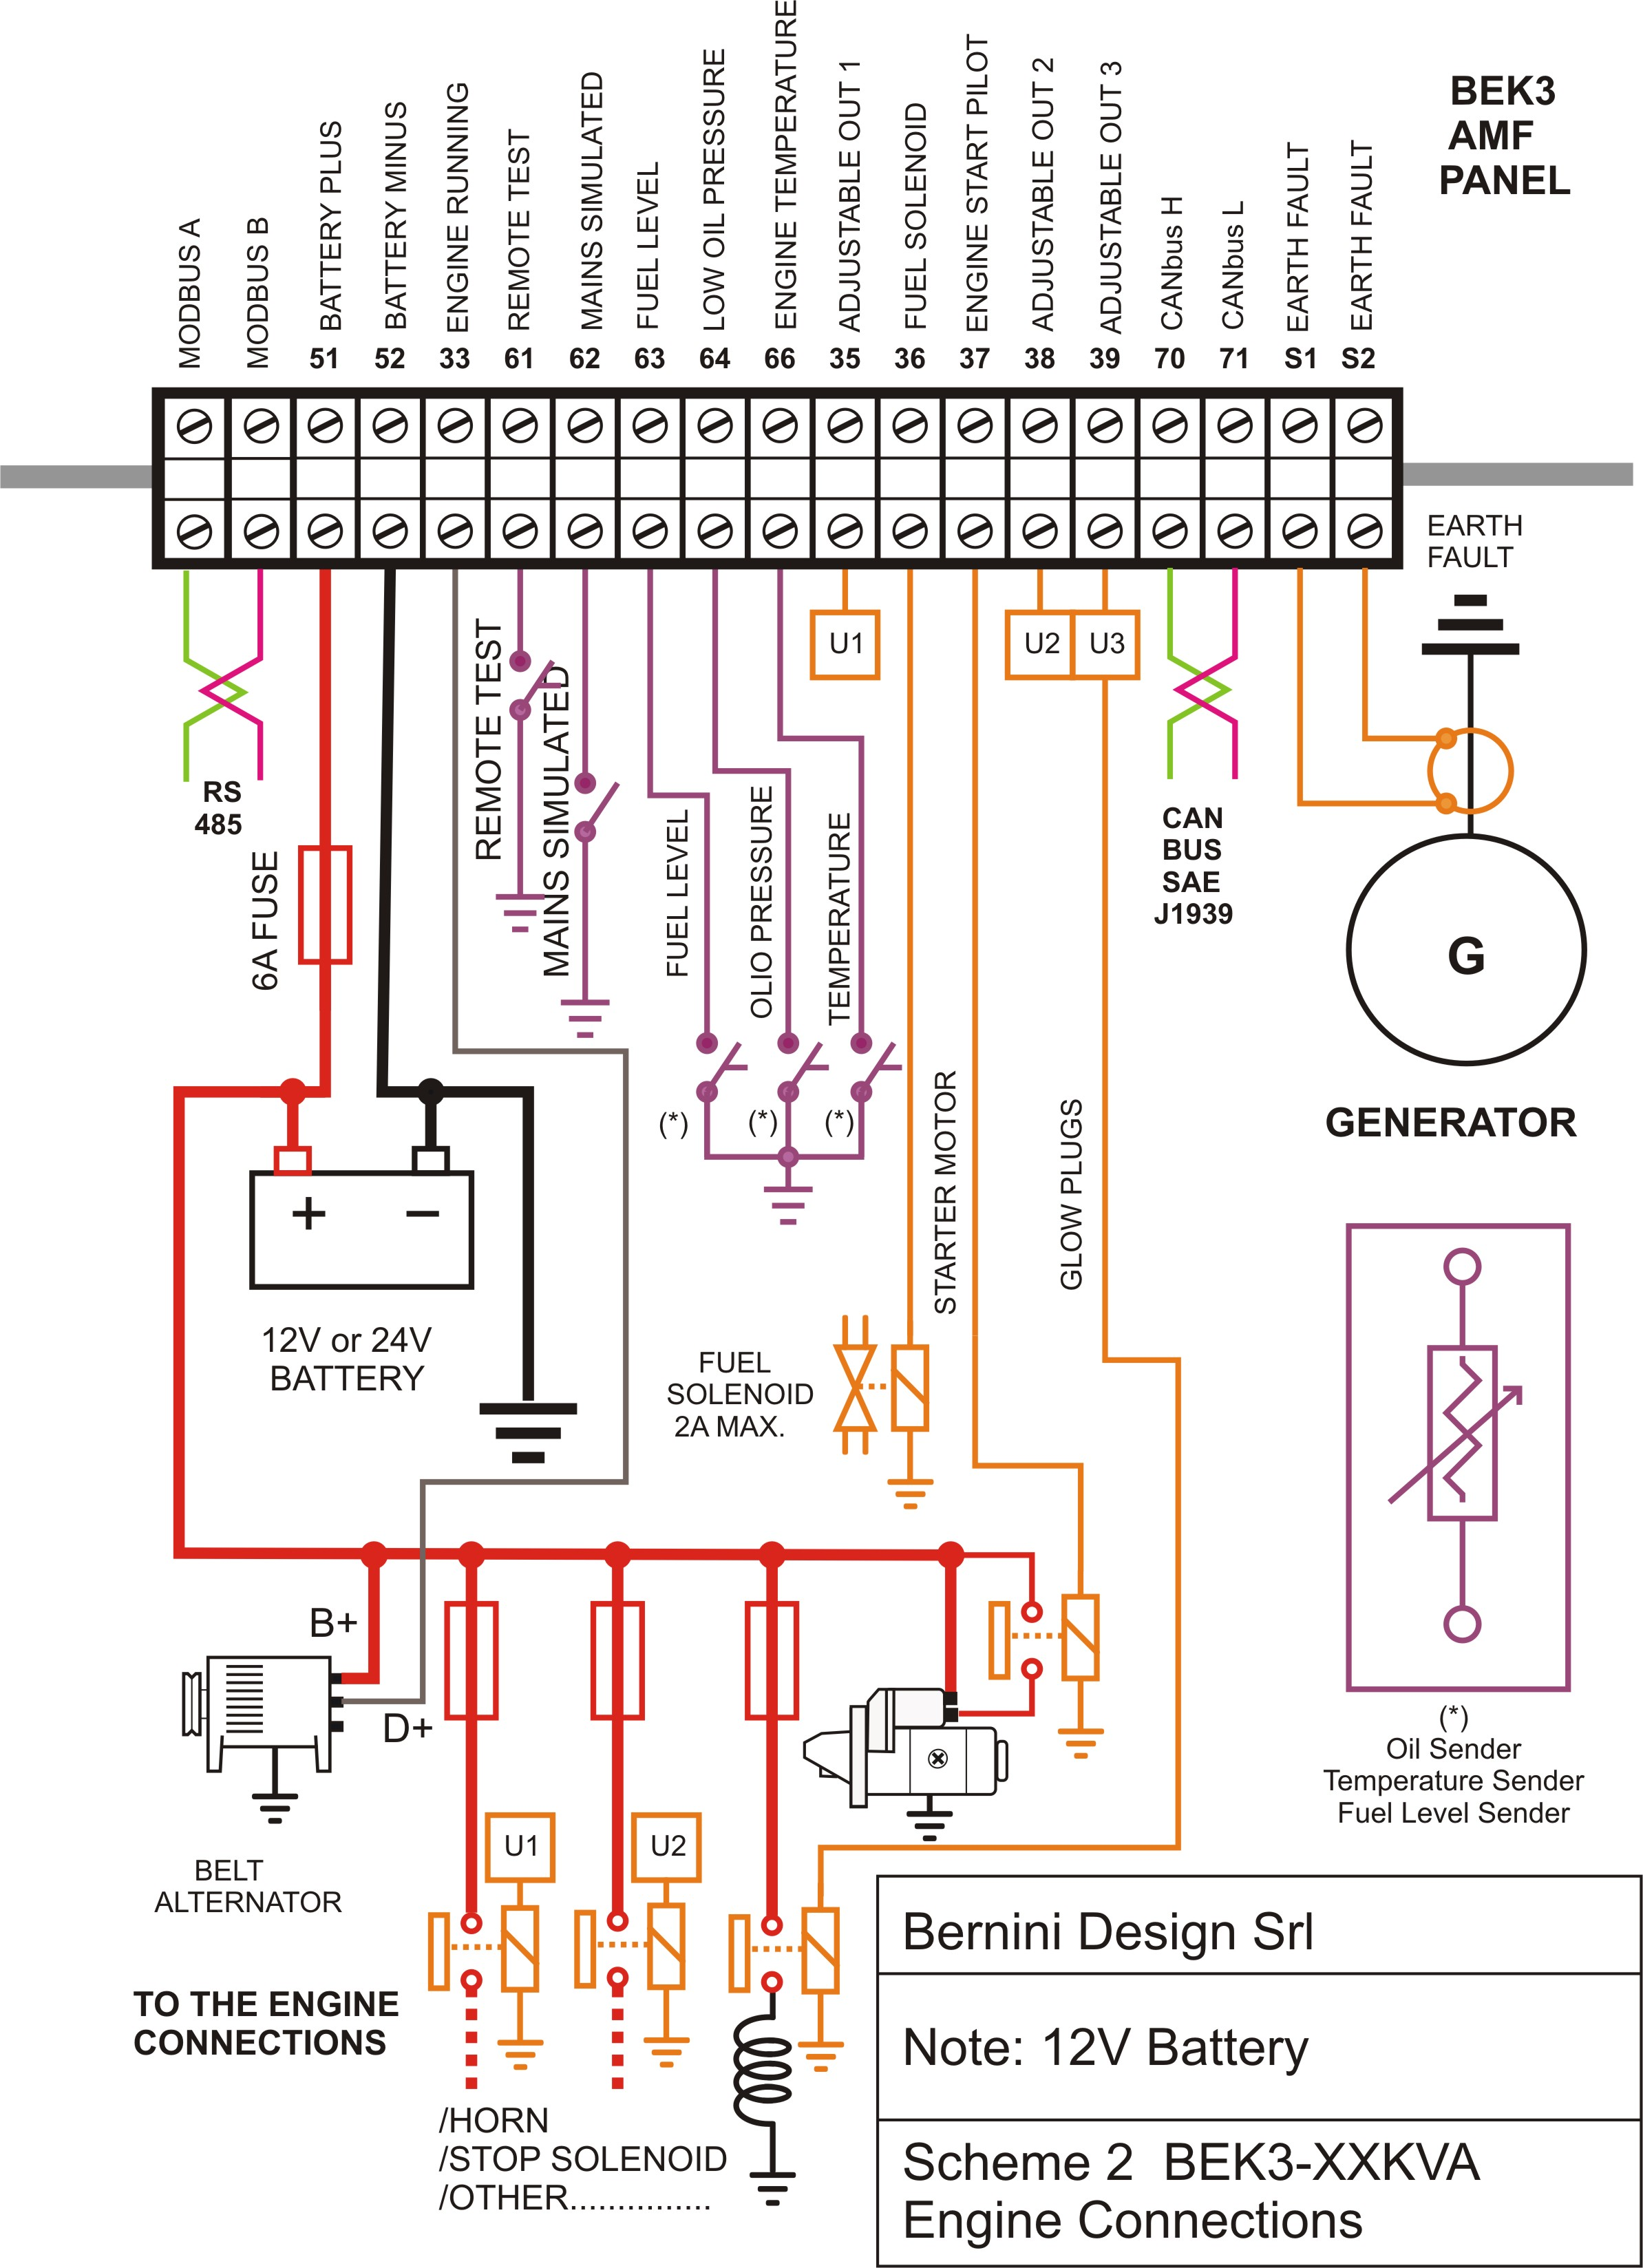 Diesel Generator Control Panel Wiring Diagram Engine Connections wiring diagram tool wiring color coding \u2022 free wiring diagrams hvac control panel wiring diagrams at honlapkeszites.co